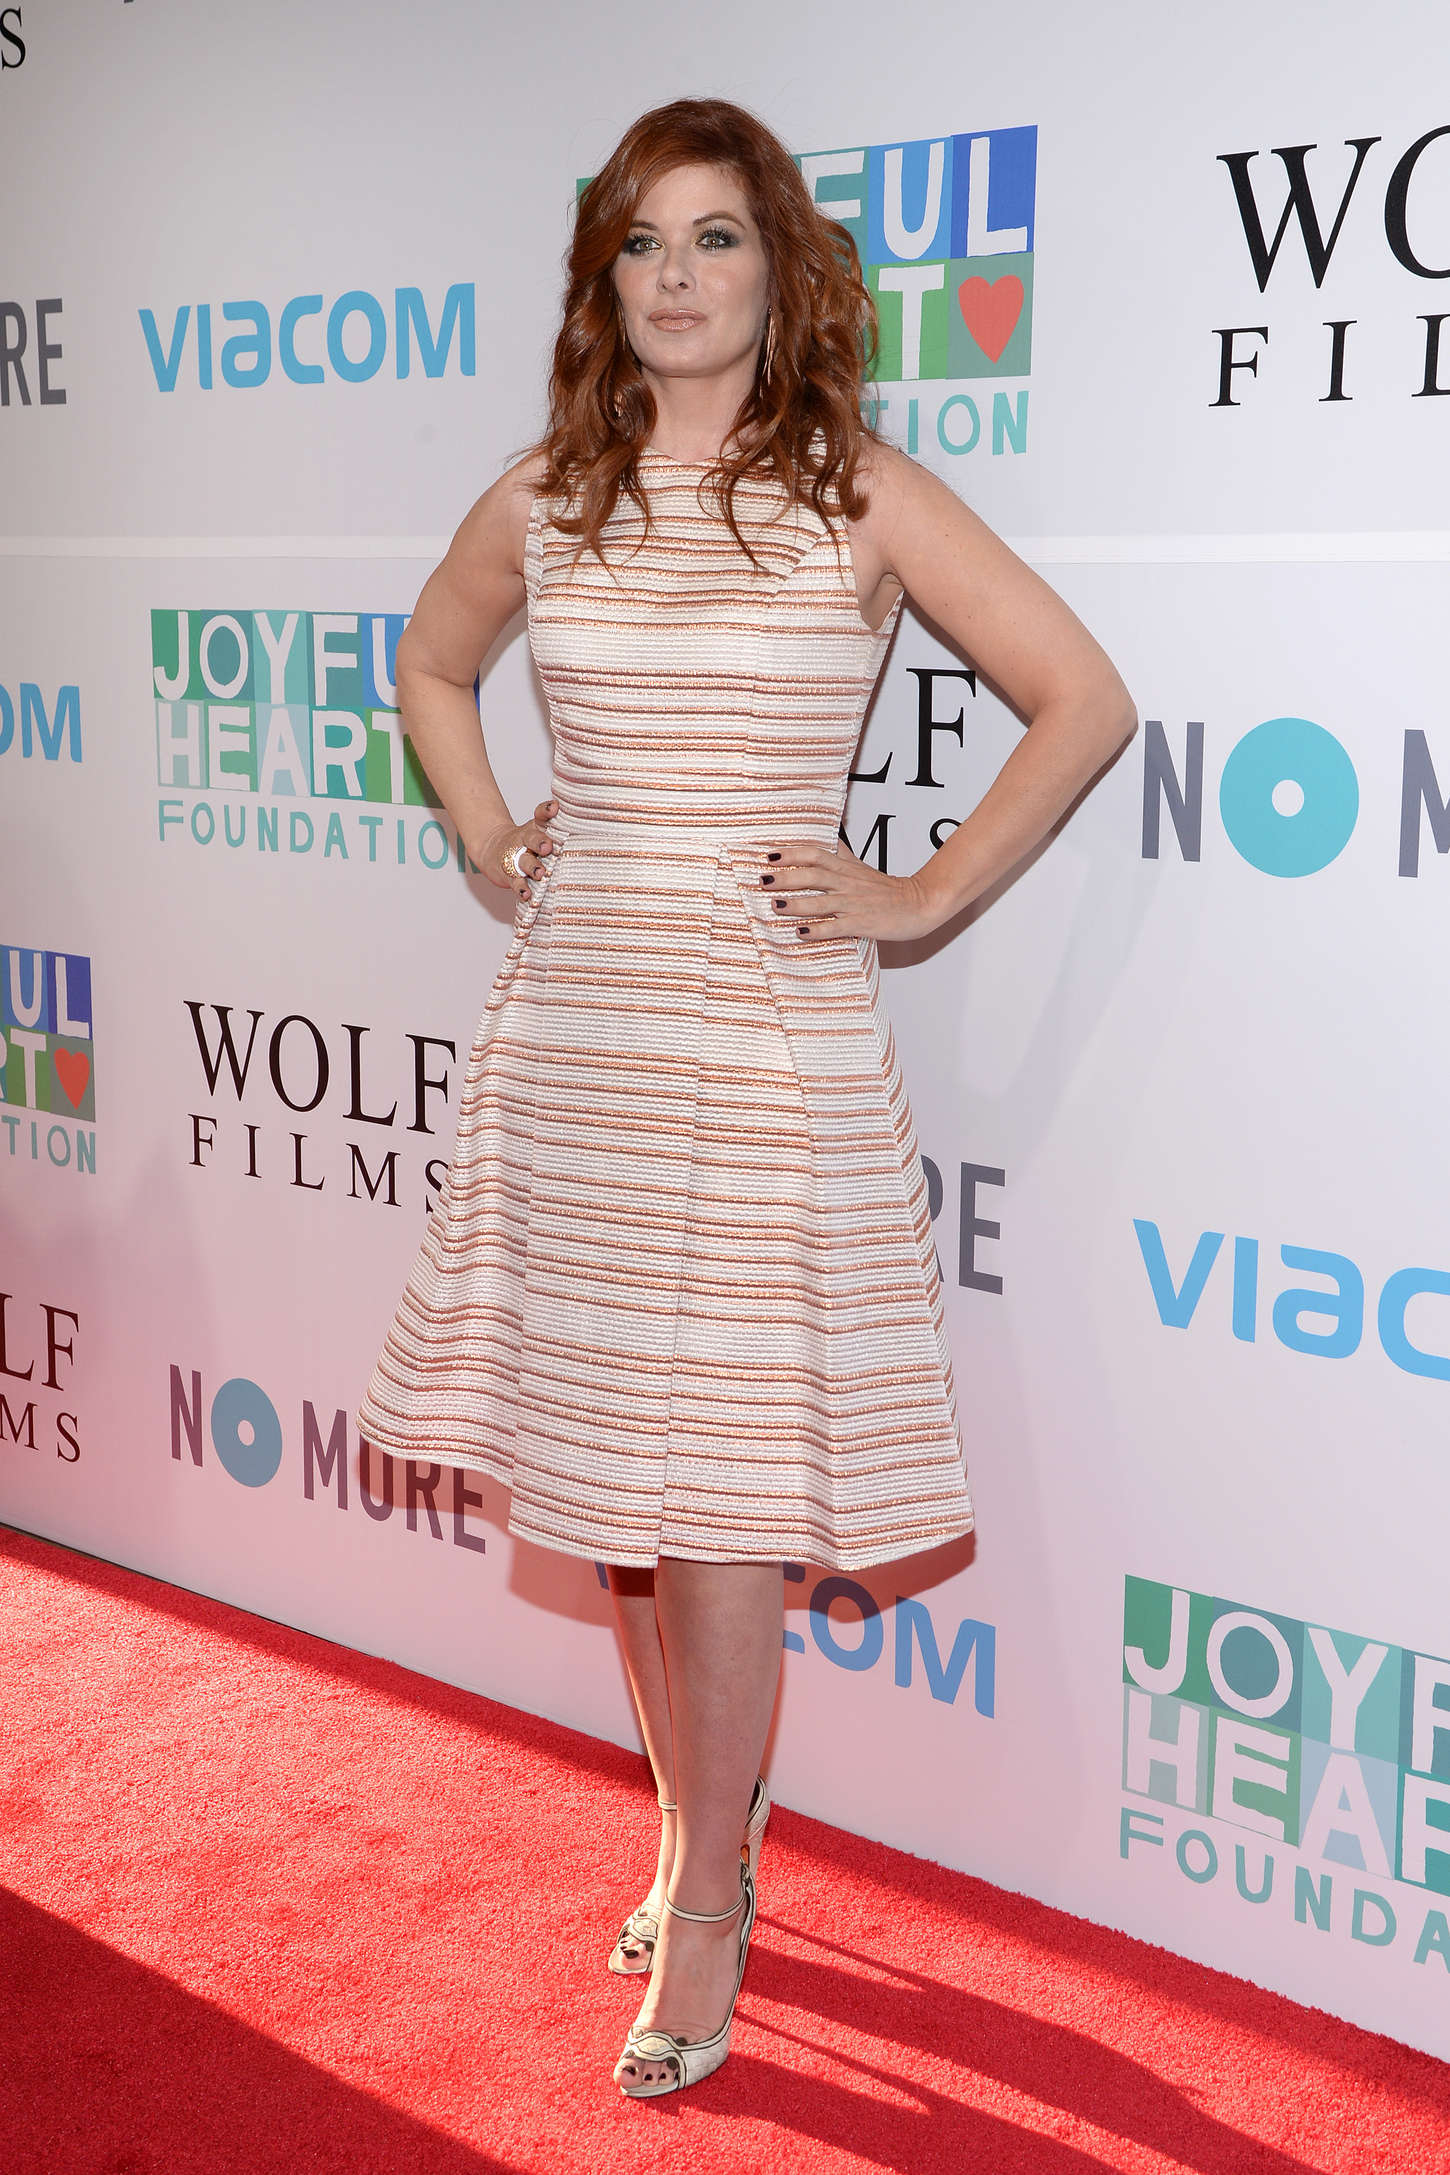 Debra Messing The Joyful Heart Foundation Presents The Joyful Revolution Gala in New York